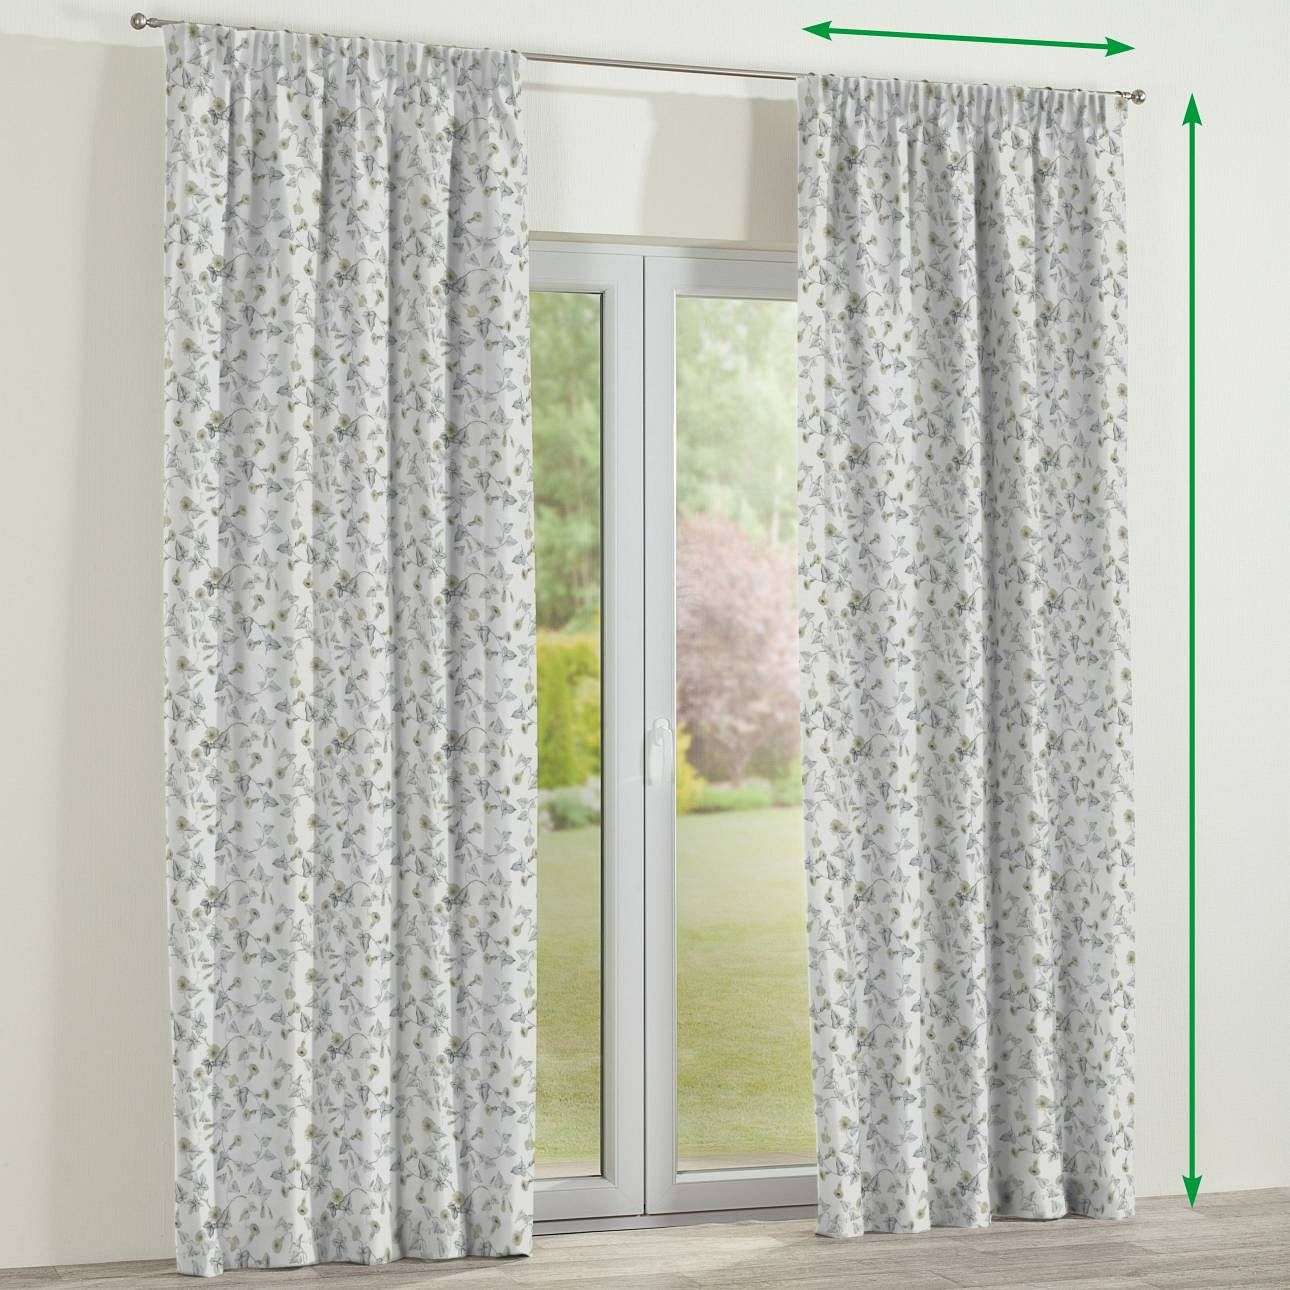 Pencil pleat curtains in collection Mirella, fabric: 140-42